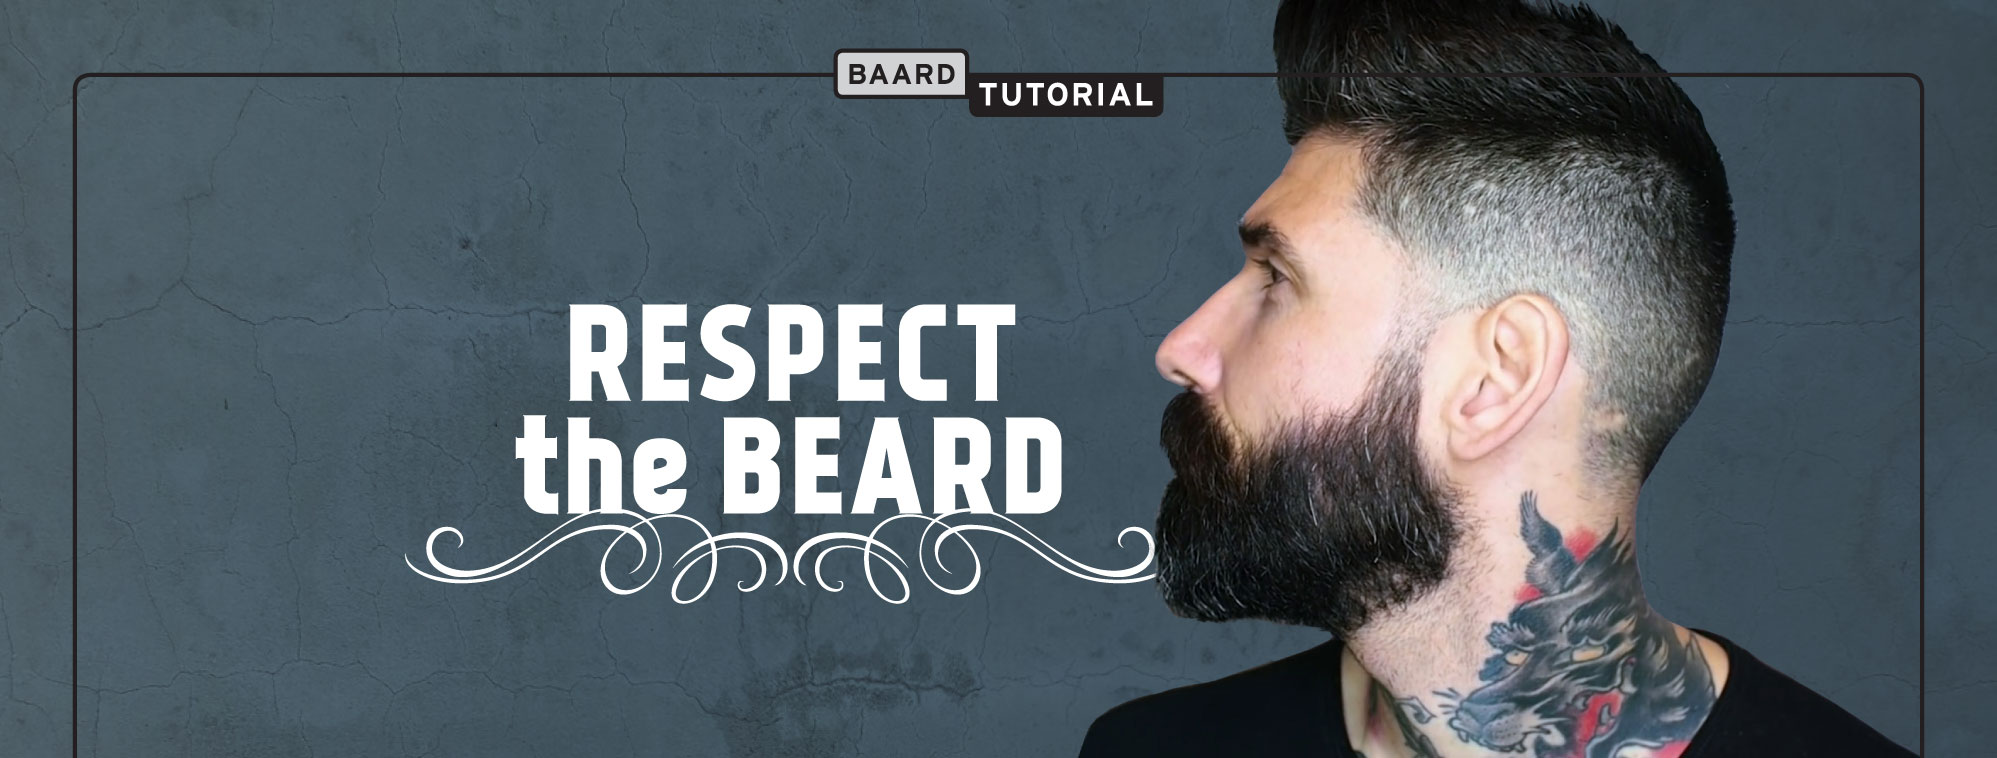 Respect The Beard Rombout Kappers